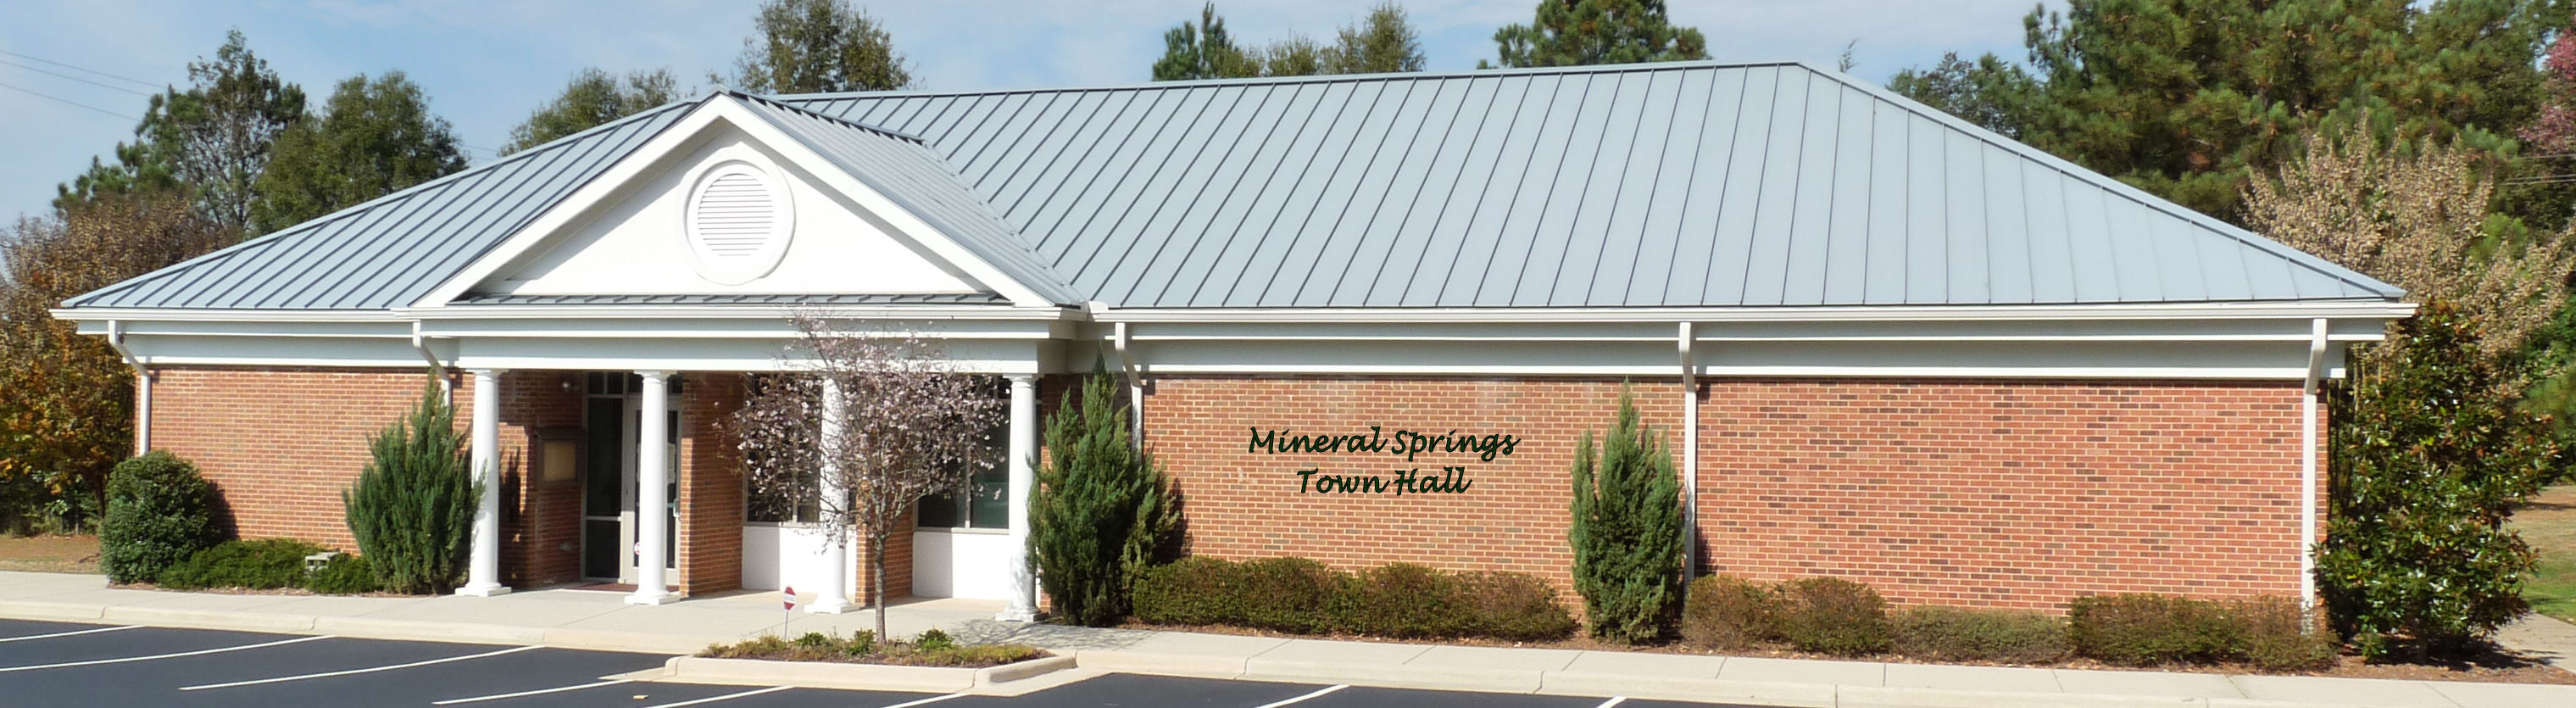 Mineral Springs Town Hall